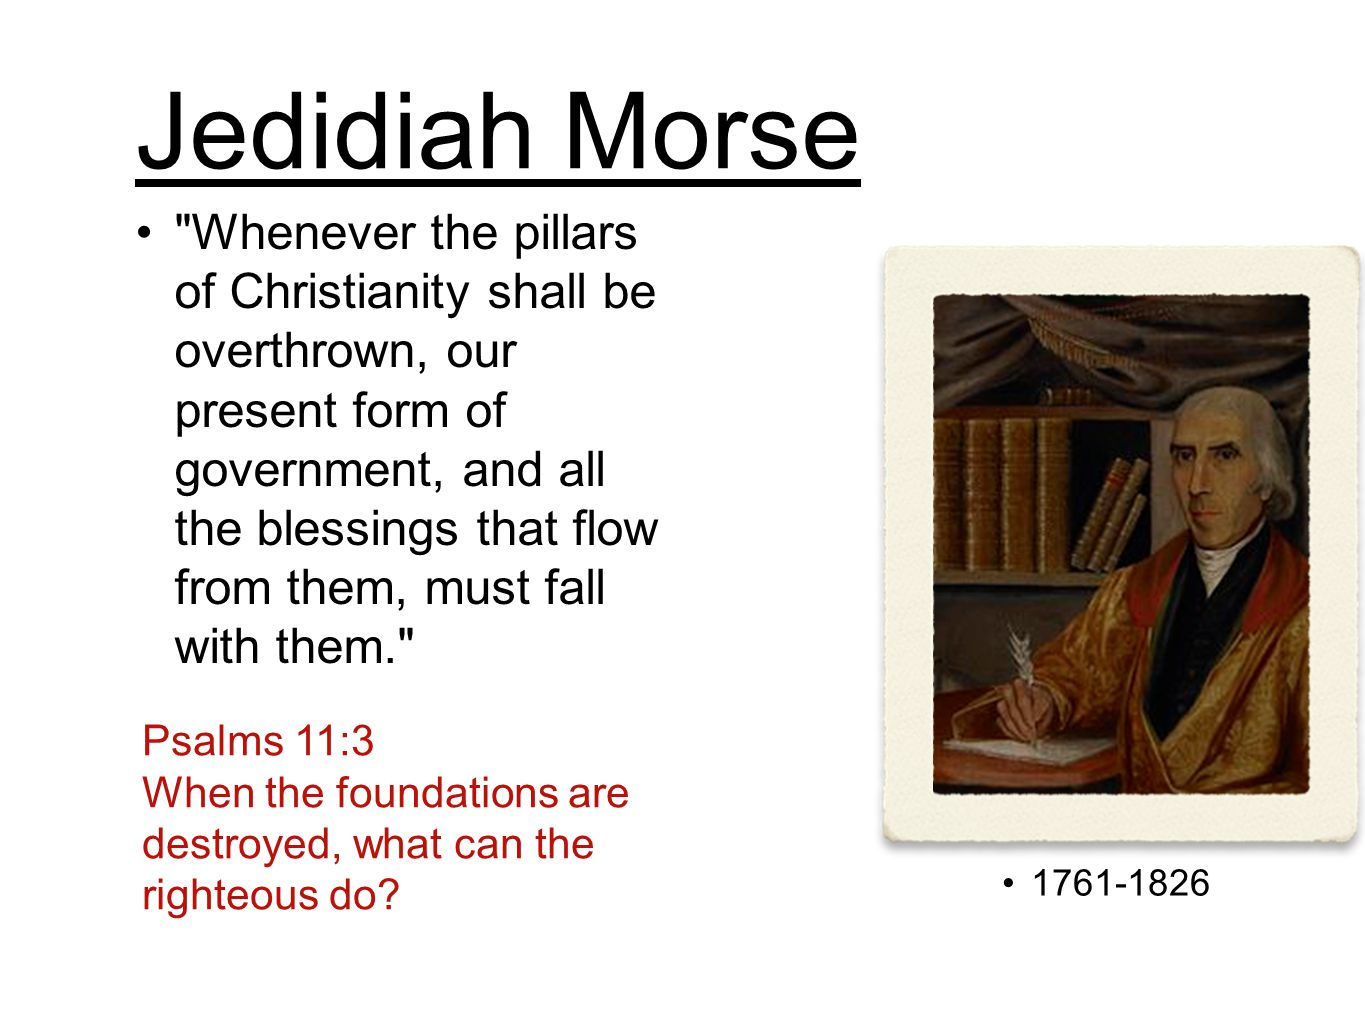 Jedidiah Morse 1761-1826 Whenever the pillars of Christianity shall be overthrown, our present form of government, and all the blessings that flow from them, must fall with them. Psalms 11:3 When the foundations are destroyed, what can the righteous do